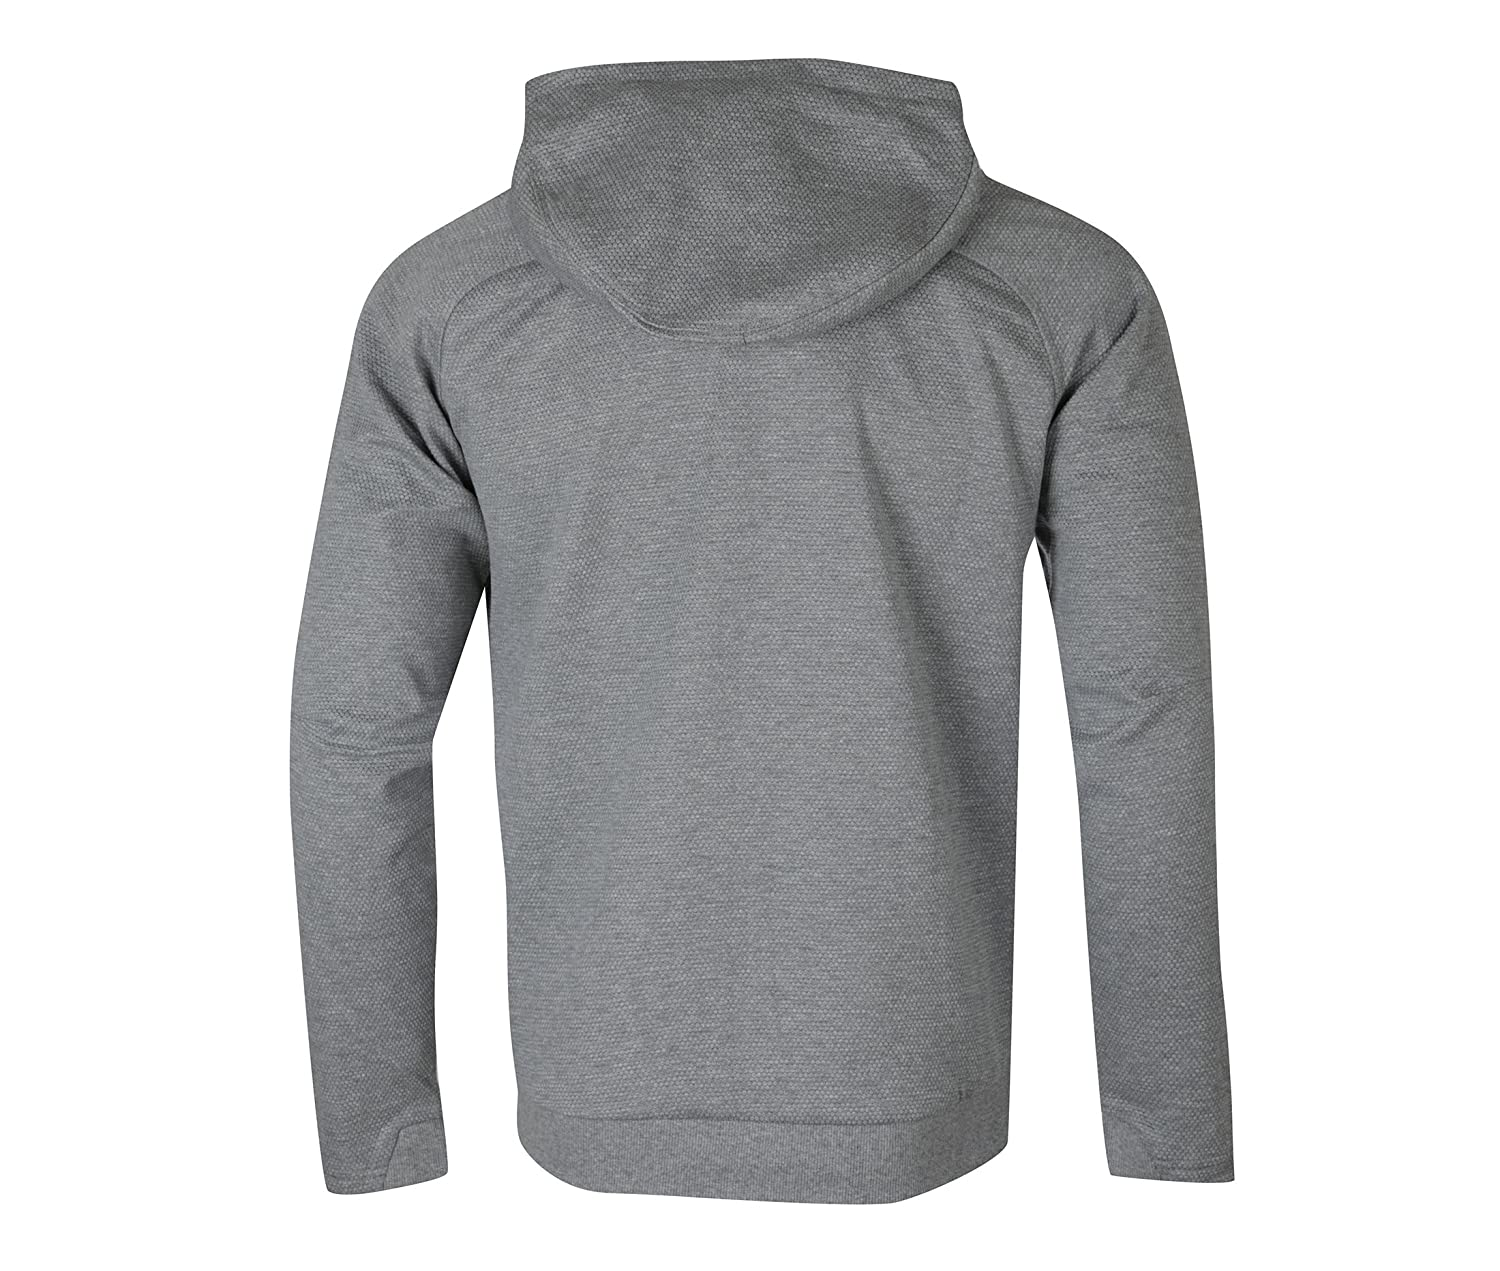 41fc00188eb03 Puma Veste survêtement Coton Om Casual Performance Hood Medium: Amazon.fr:  Sports et Loisirs